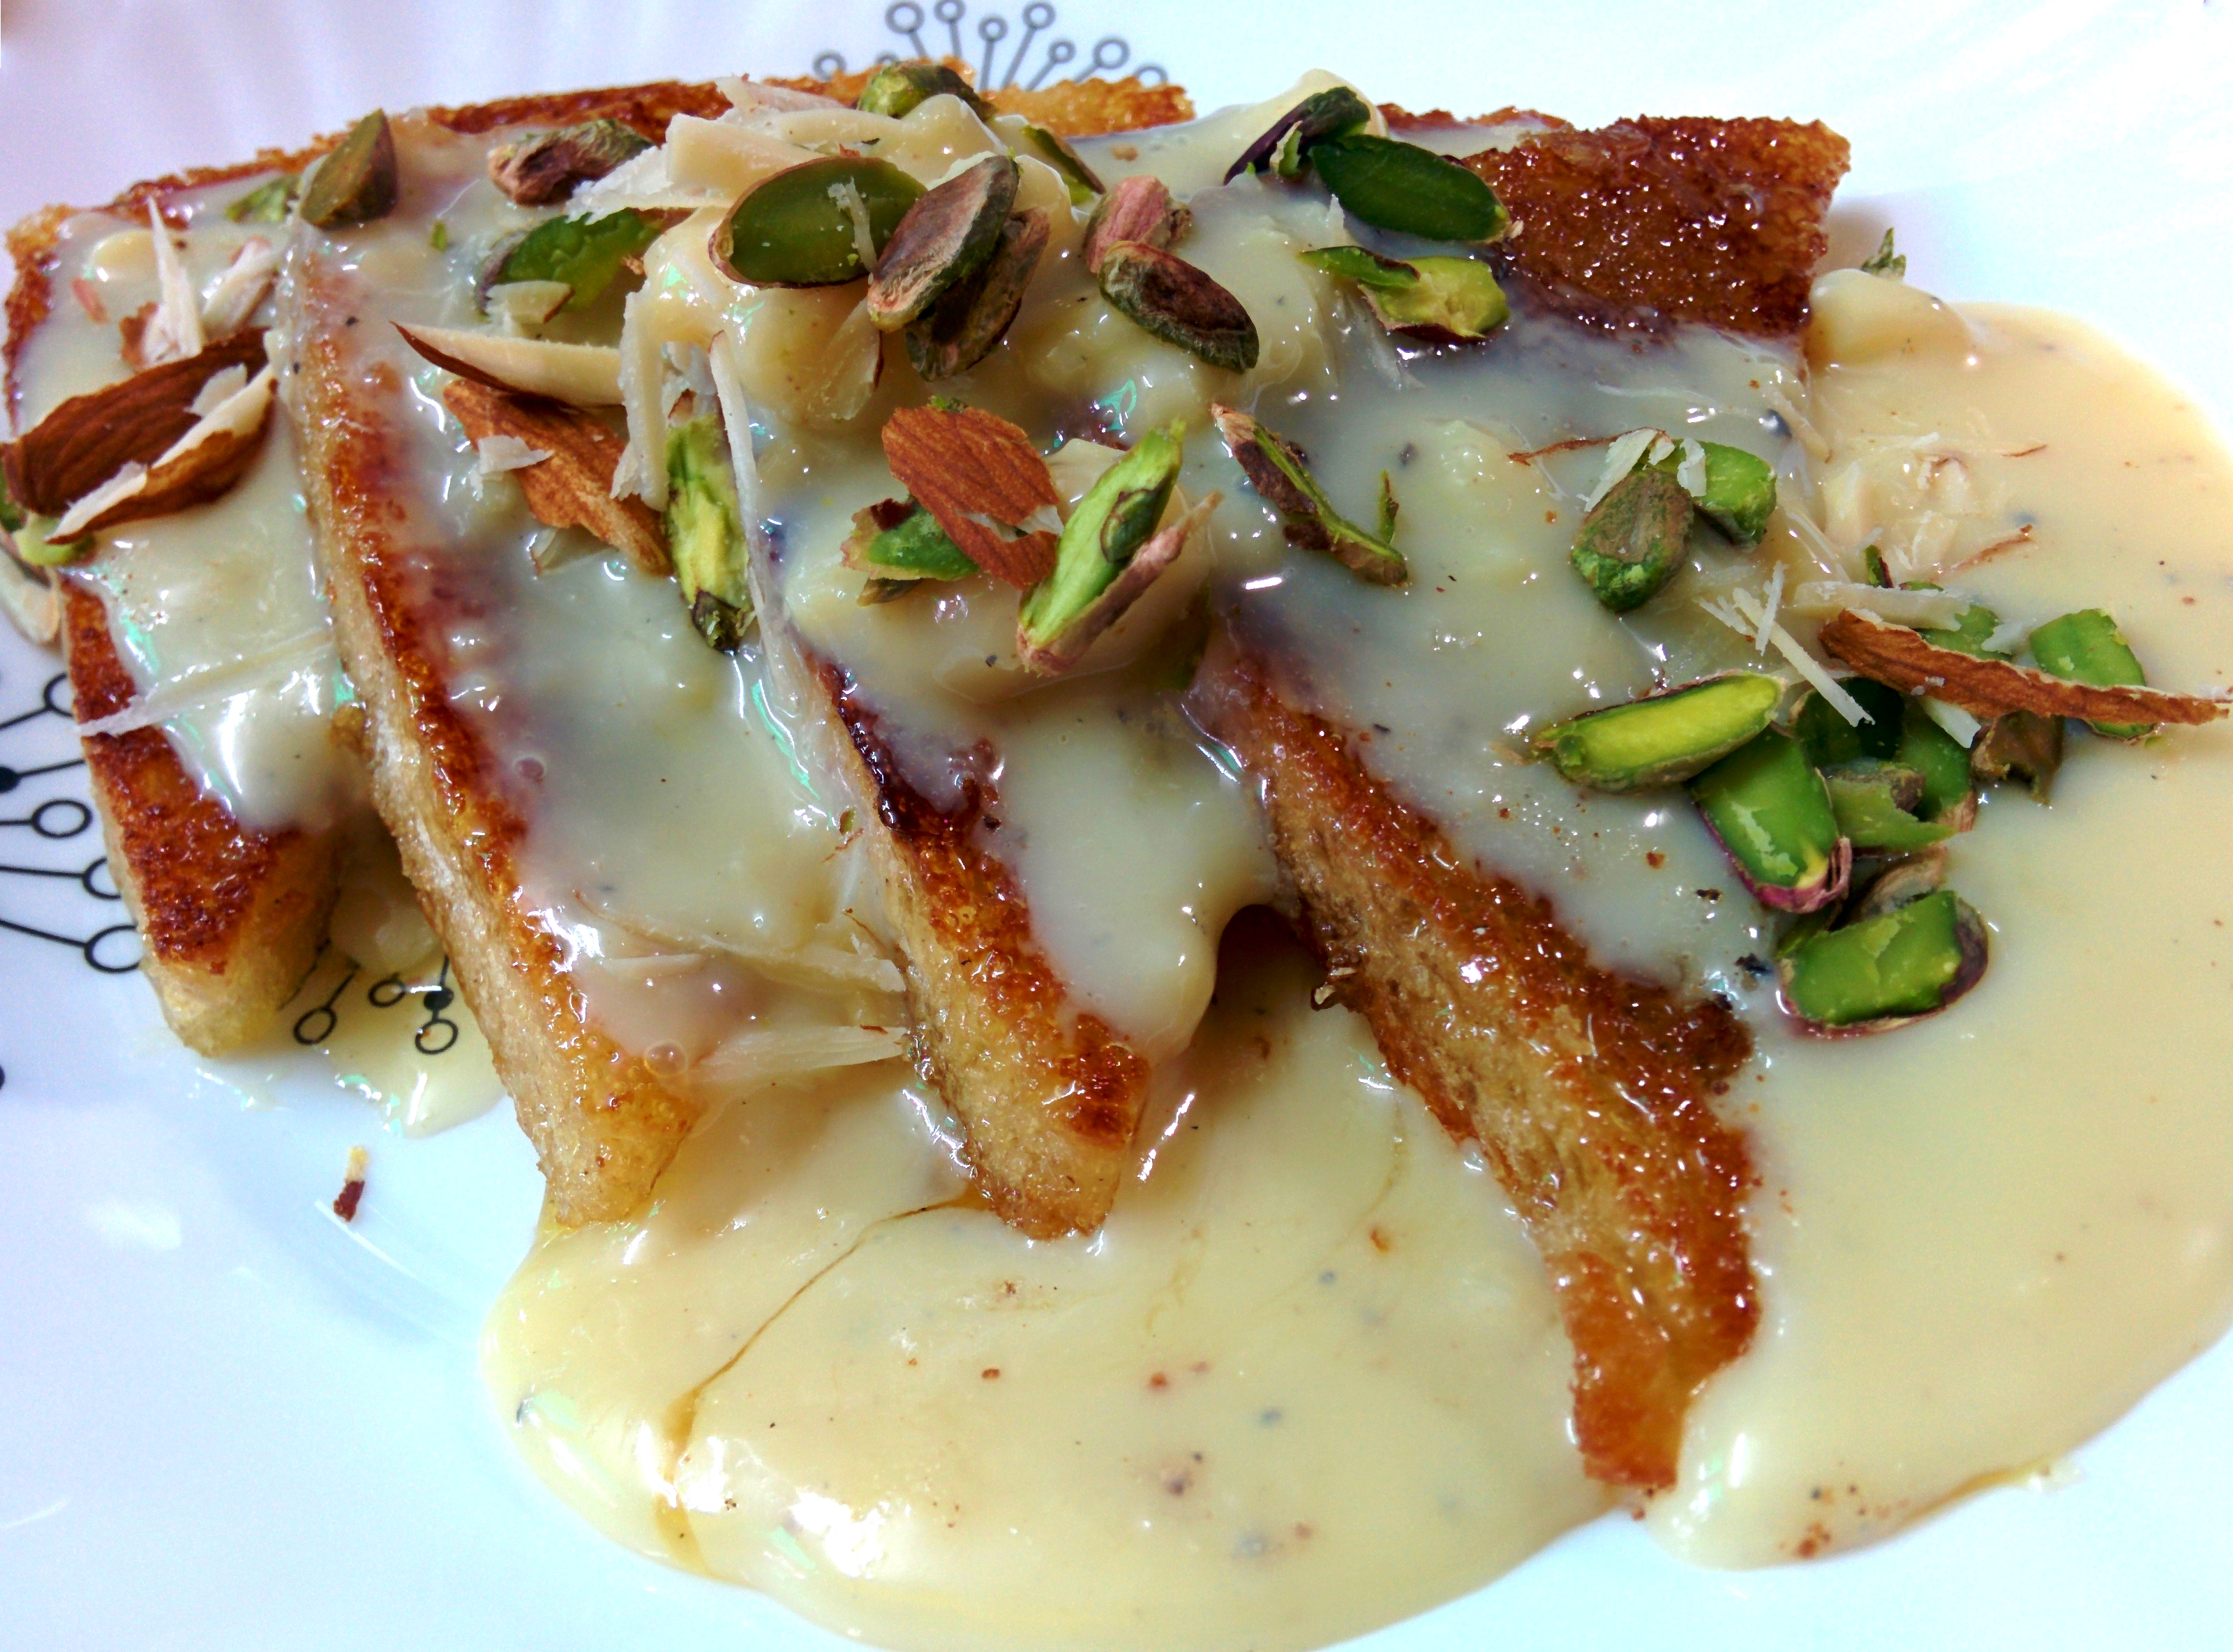 Picture of Shahi Tukda, an Exotic Indian Bread Pudding.